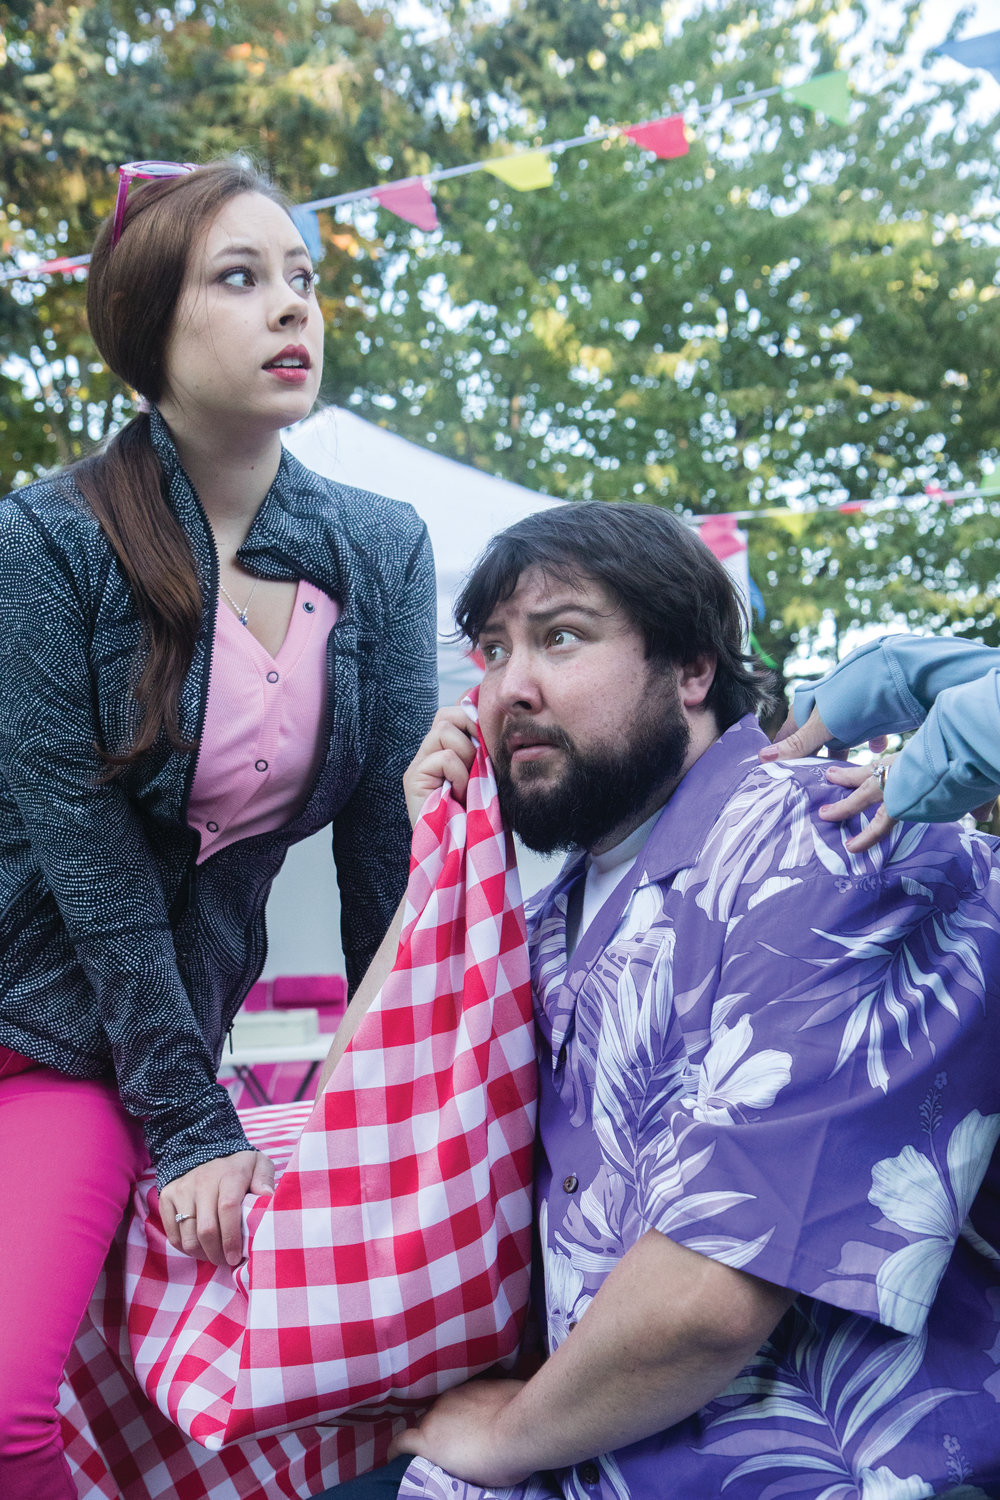 Key City Public Theatre Actor Brendan Chambers plays the fat knight, Sir John Falstaff, while Krista Curry plays one of the merry wives who fools him.